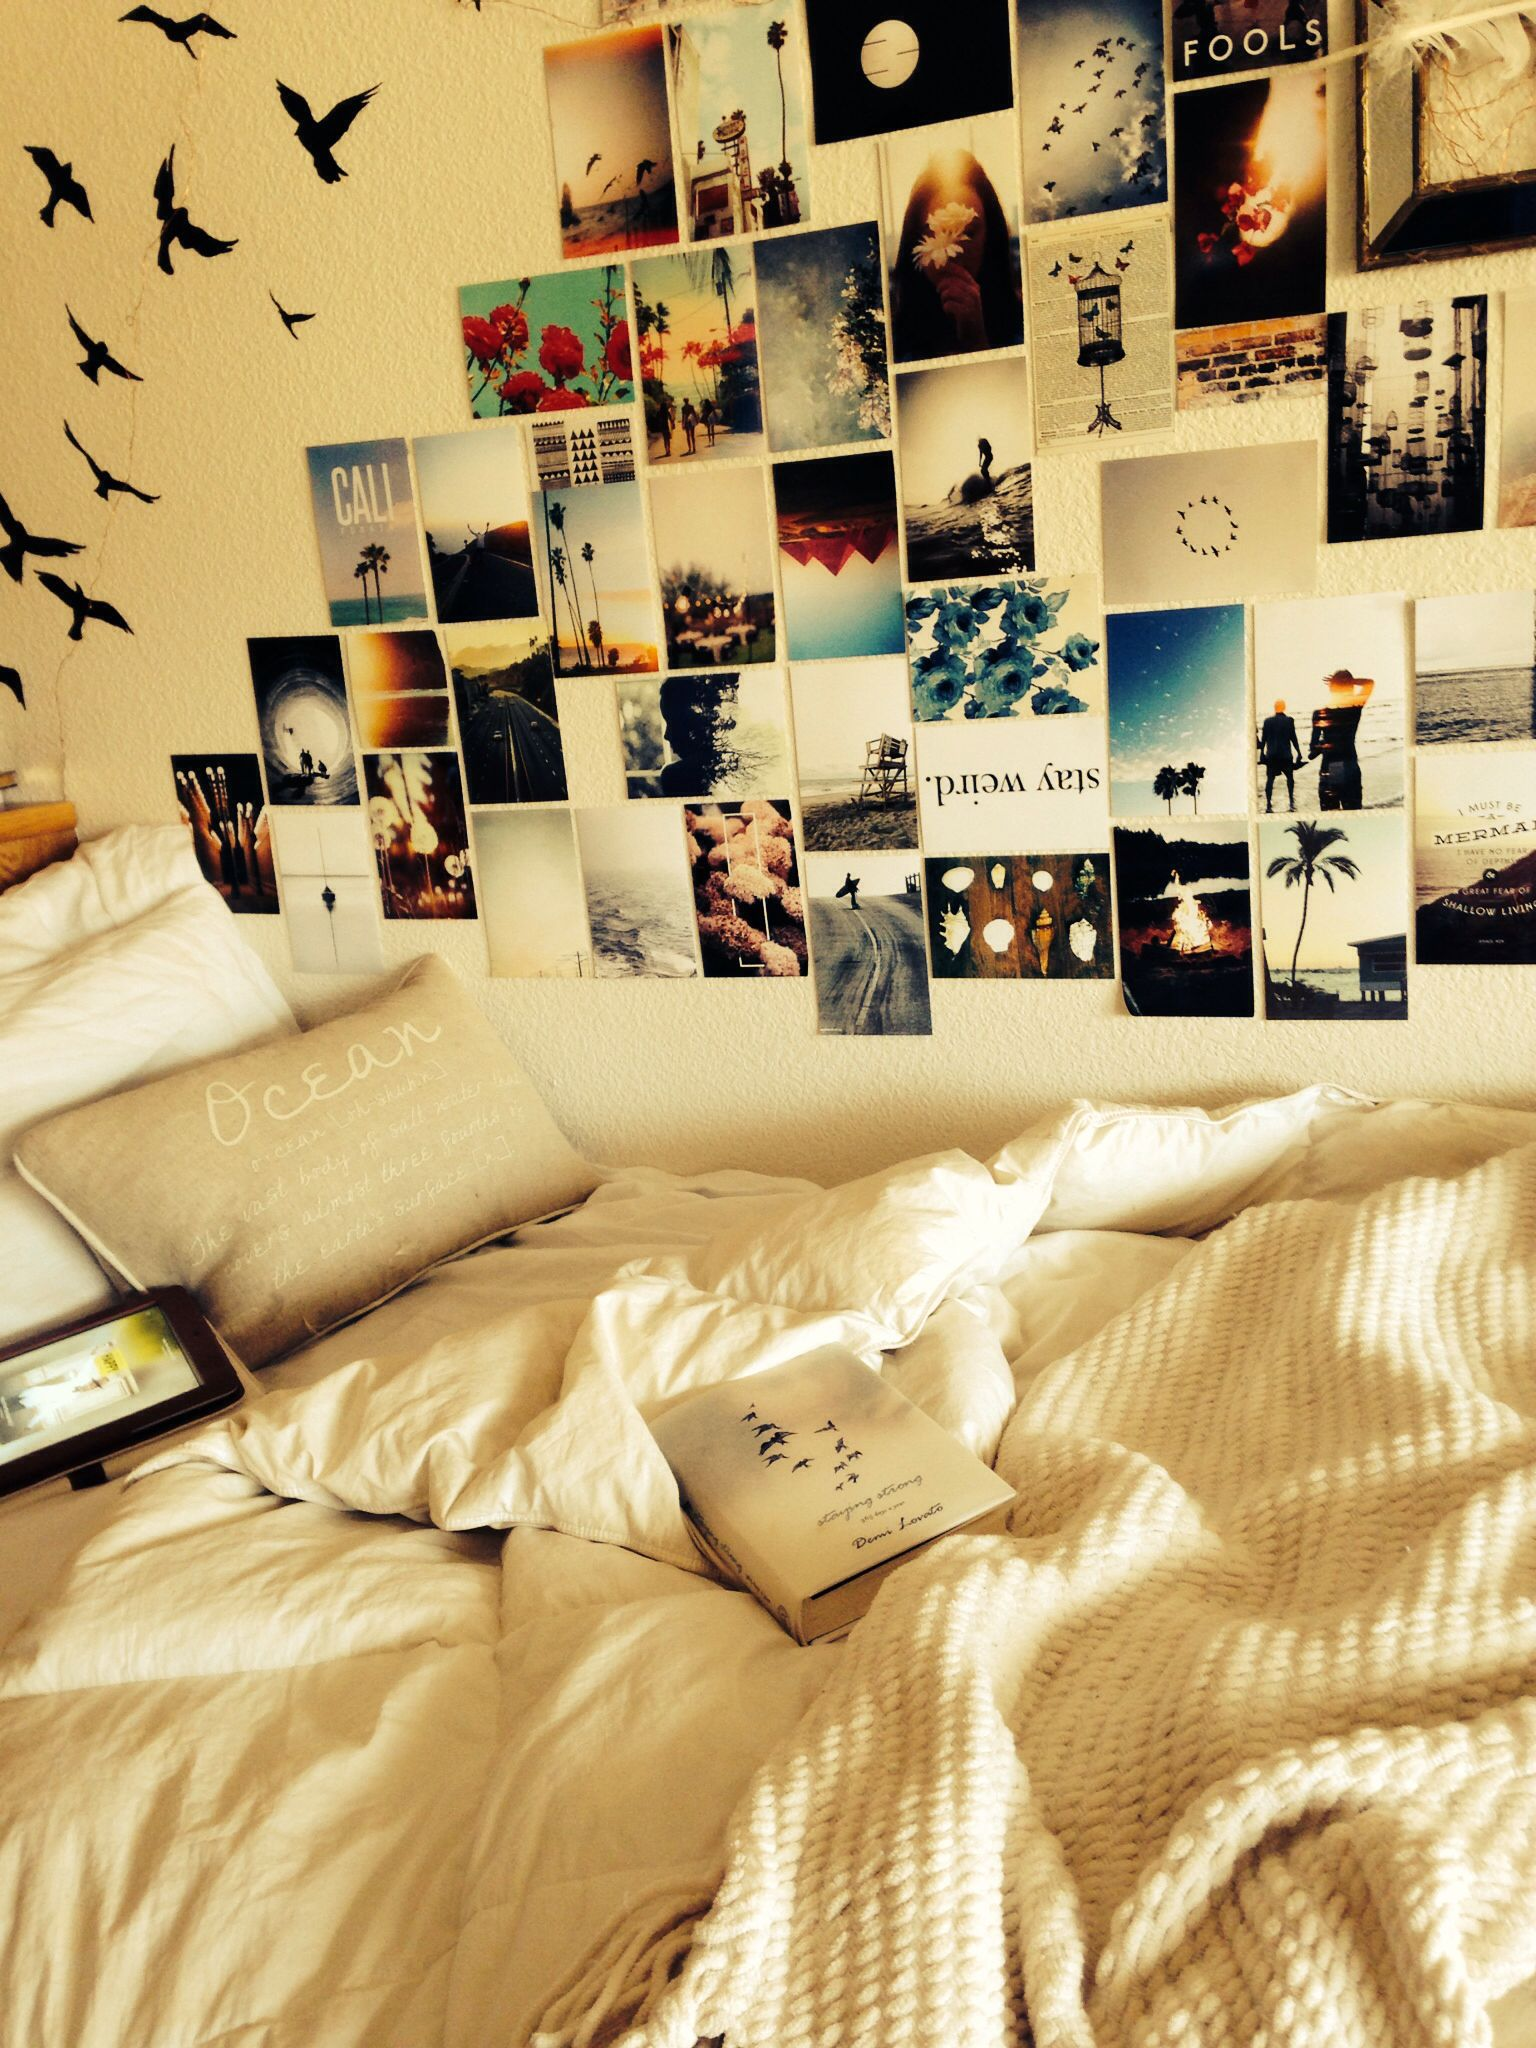 Cute and cozy college dorm room Love the pictures on the wall